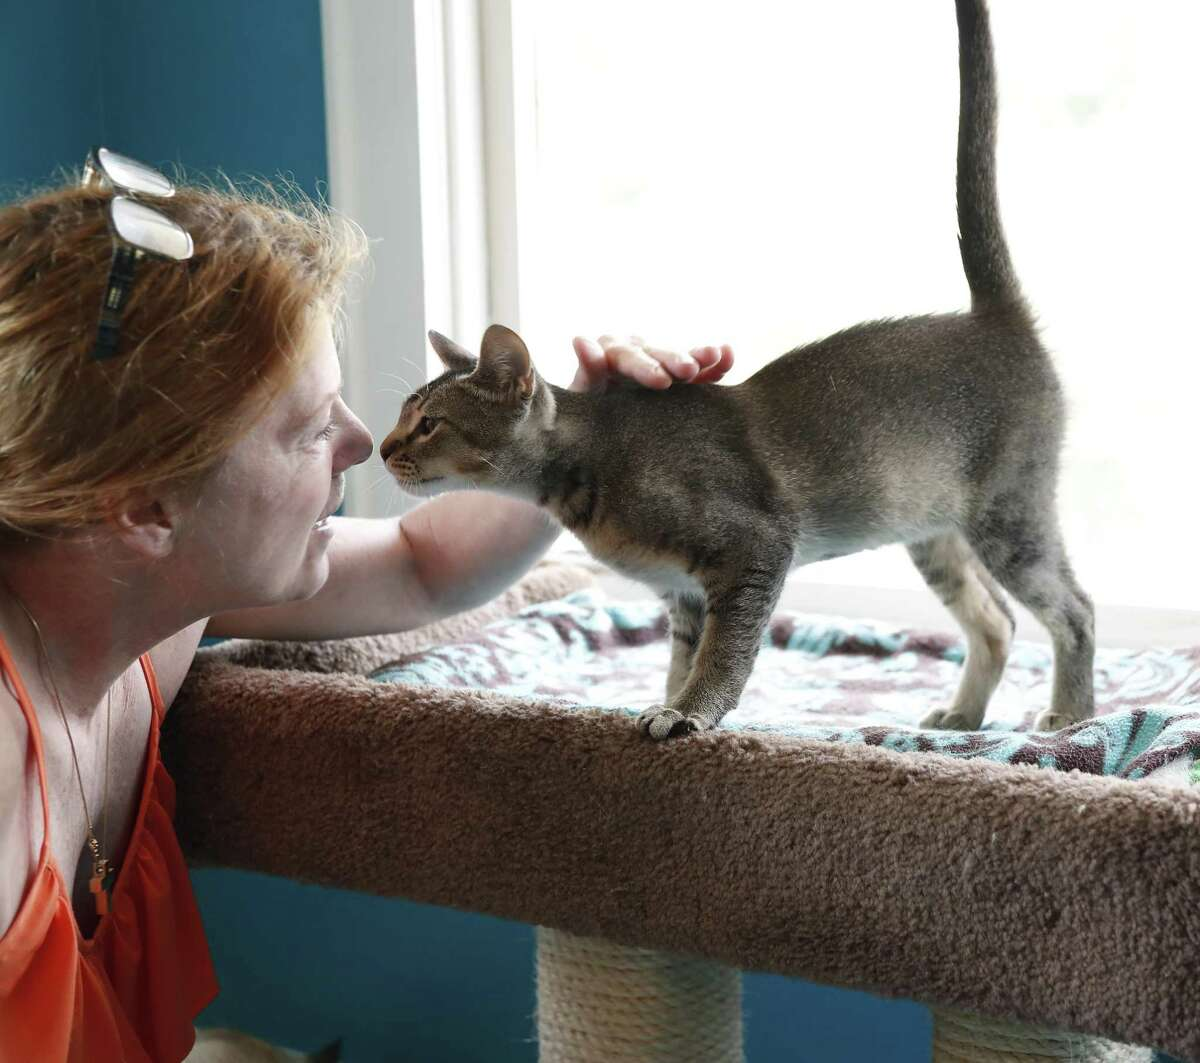 Brenda Fraley, who runs the at Save a Purrfect Cat Rescue, talks to Mason, a little Abyssinian kitten, in River Oaks, May 28, 2019.